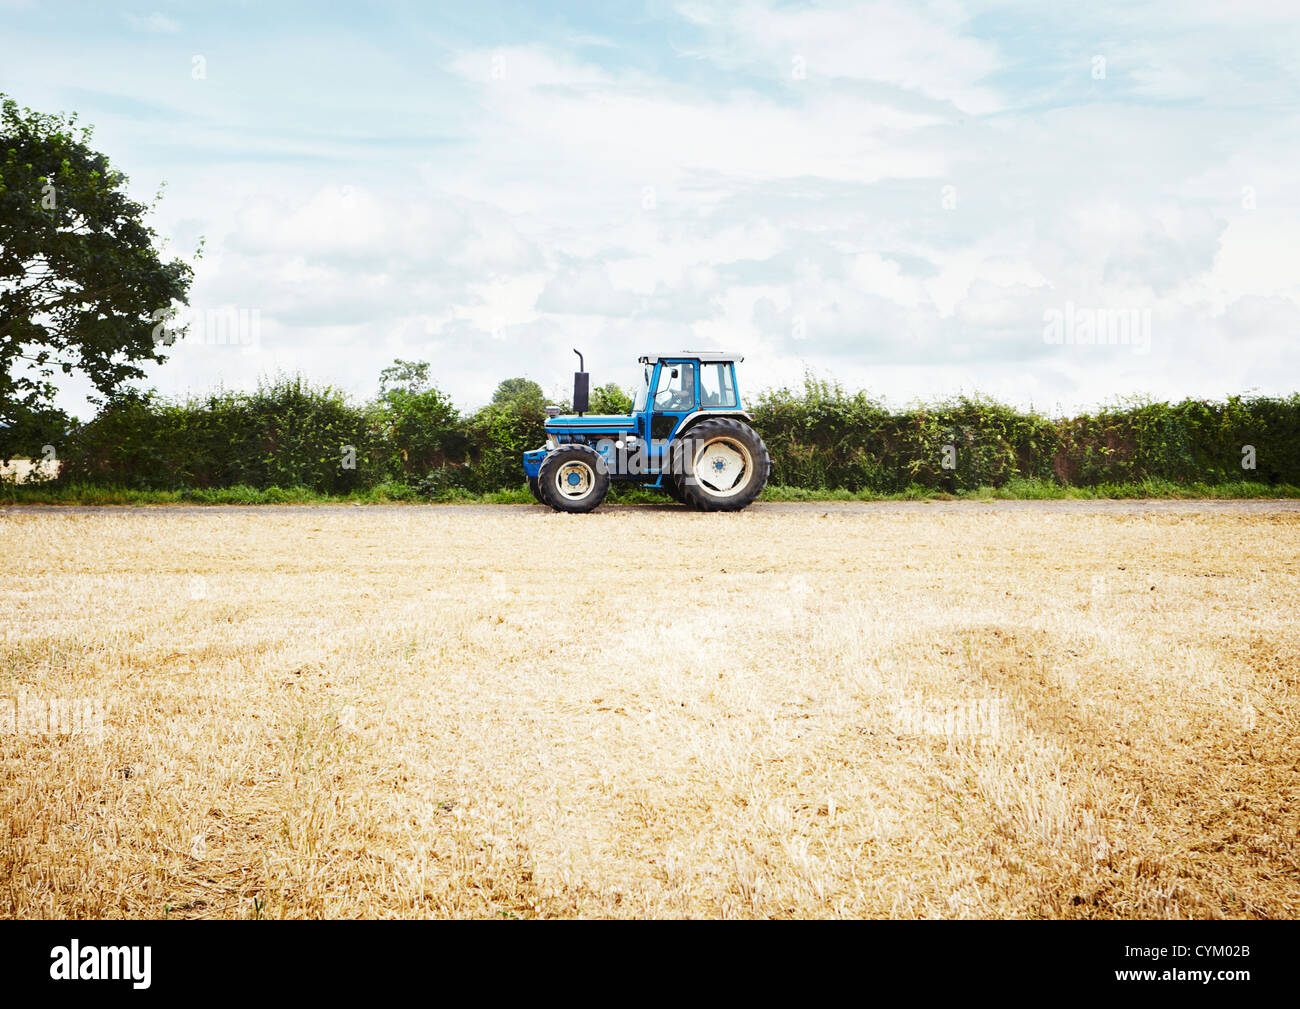 Tractor driving in tilled crop field - Stock Image